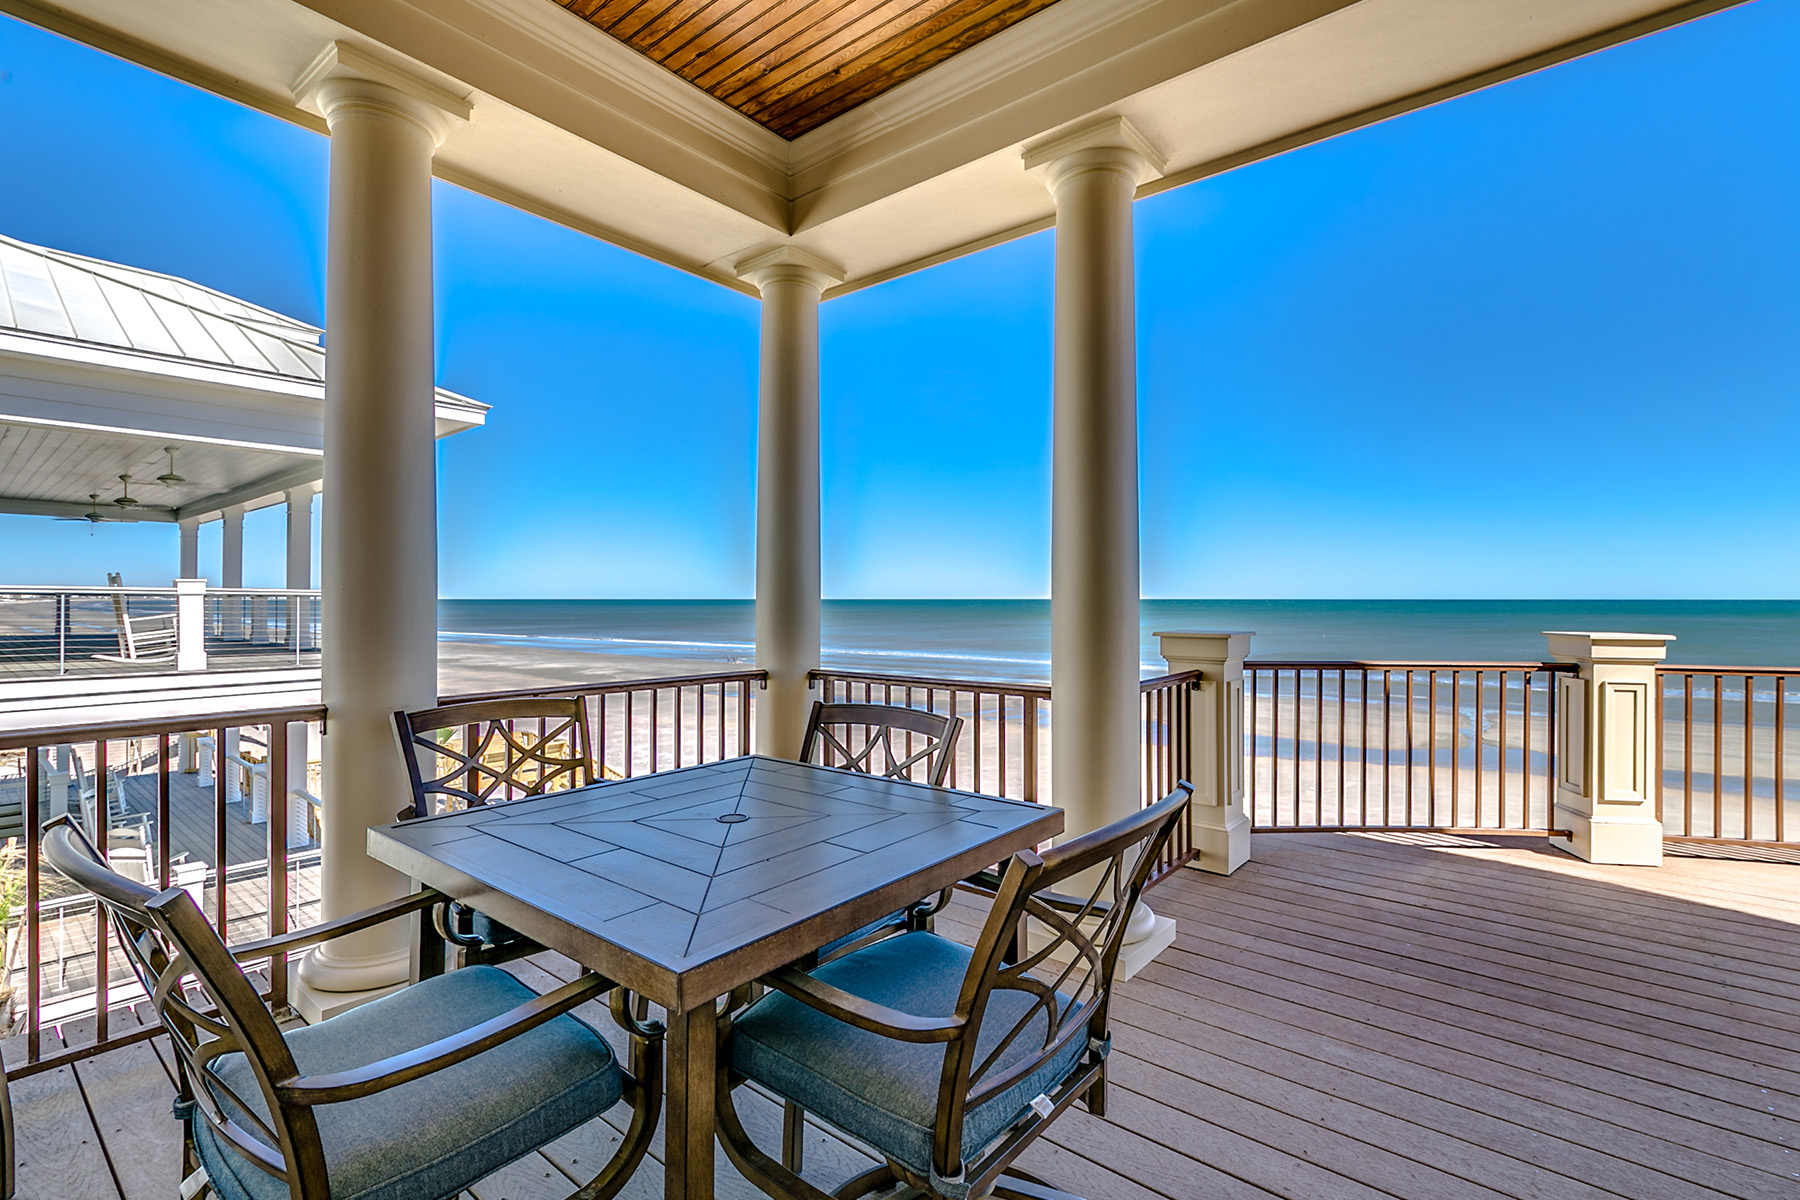 Additional photo for property listing at 1345 Norris Drive, Pawleys Island, SC 29585 1345  Norris Drive Pawleys Island, South Carolina 29585 United States